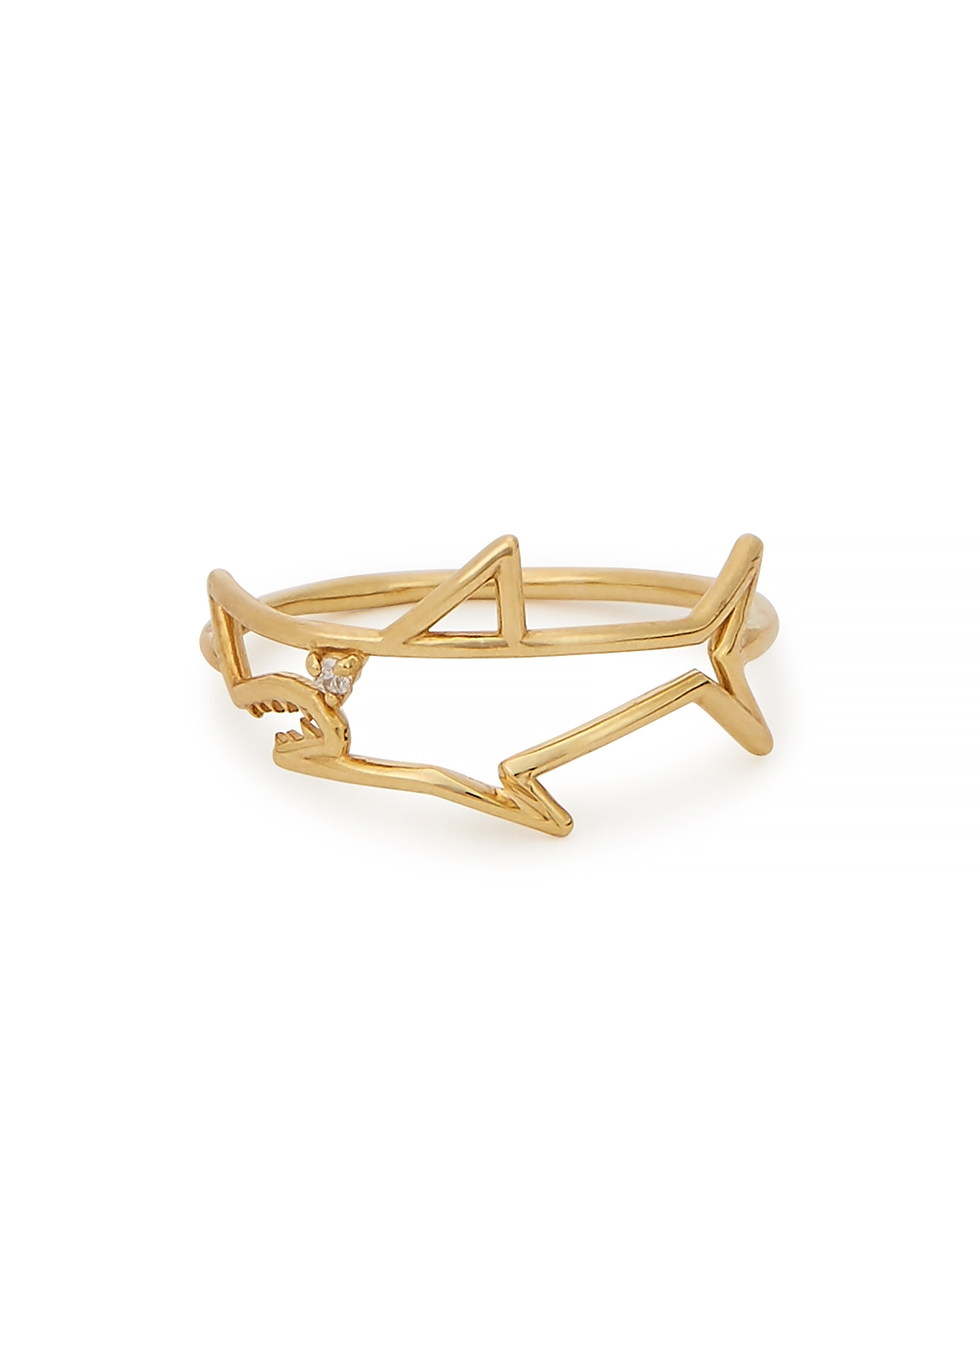 Tiburon Brillante 9kt yellow gold ring